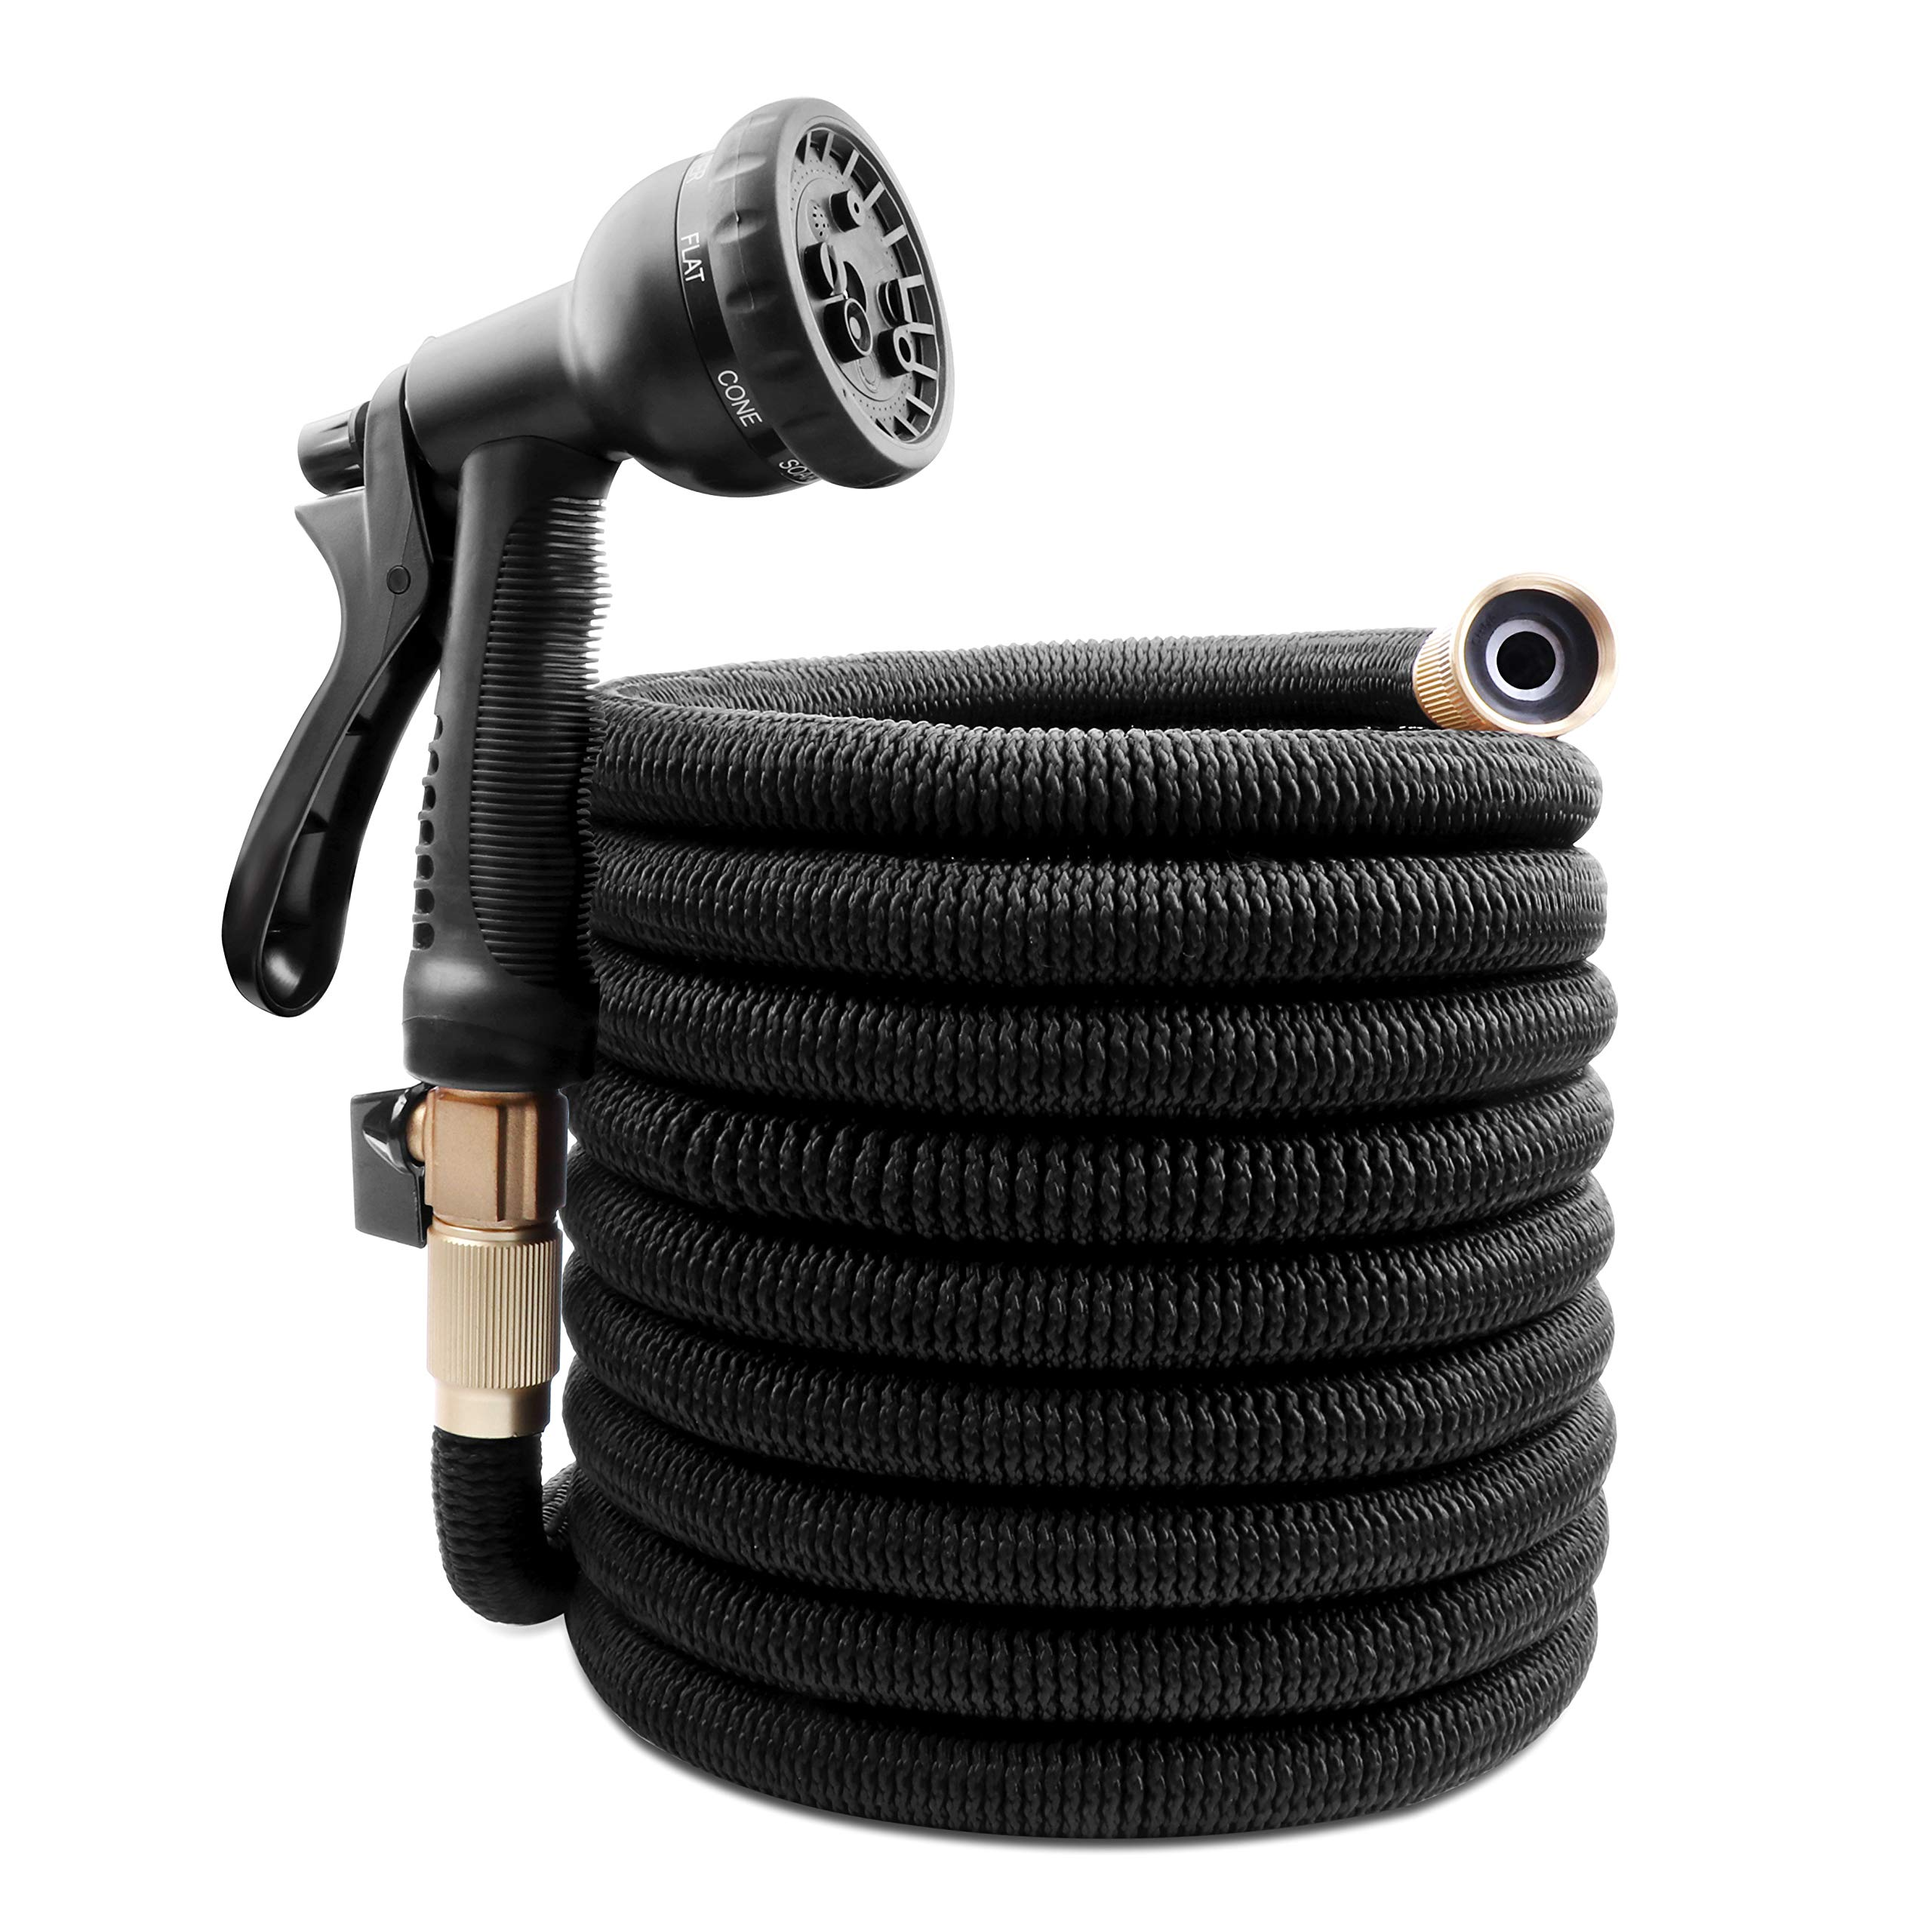 ANYEV Expandable Garden Hose, 50ft Water Hose with Double Latex Core, 3/4'' Solid Brass Fittings, Extra Strength Fabric, 8 Function Spray Included